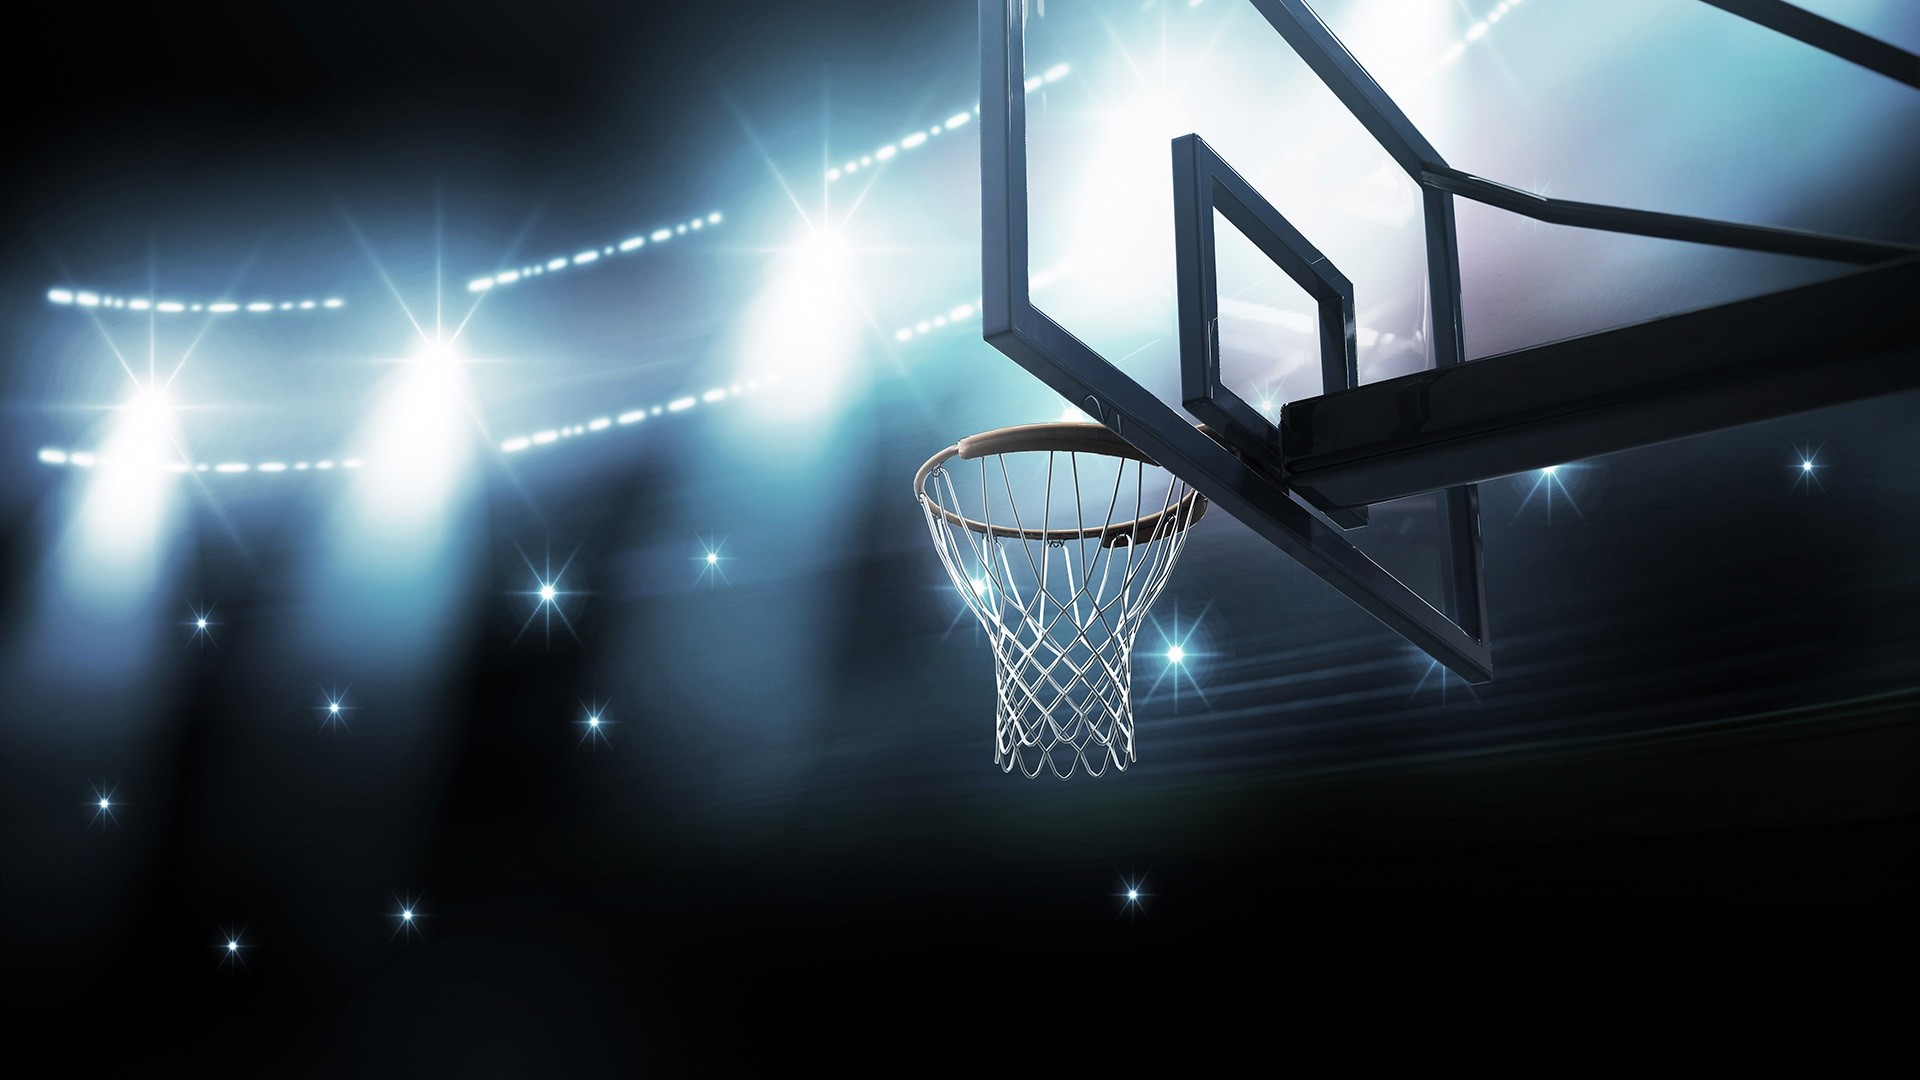 Basketball Wallpaper ·① Download Free Stunning Wallpapers